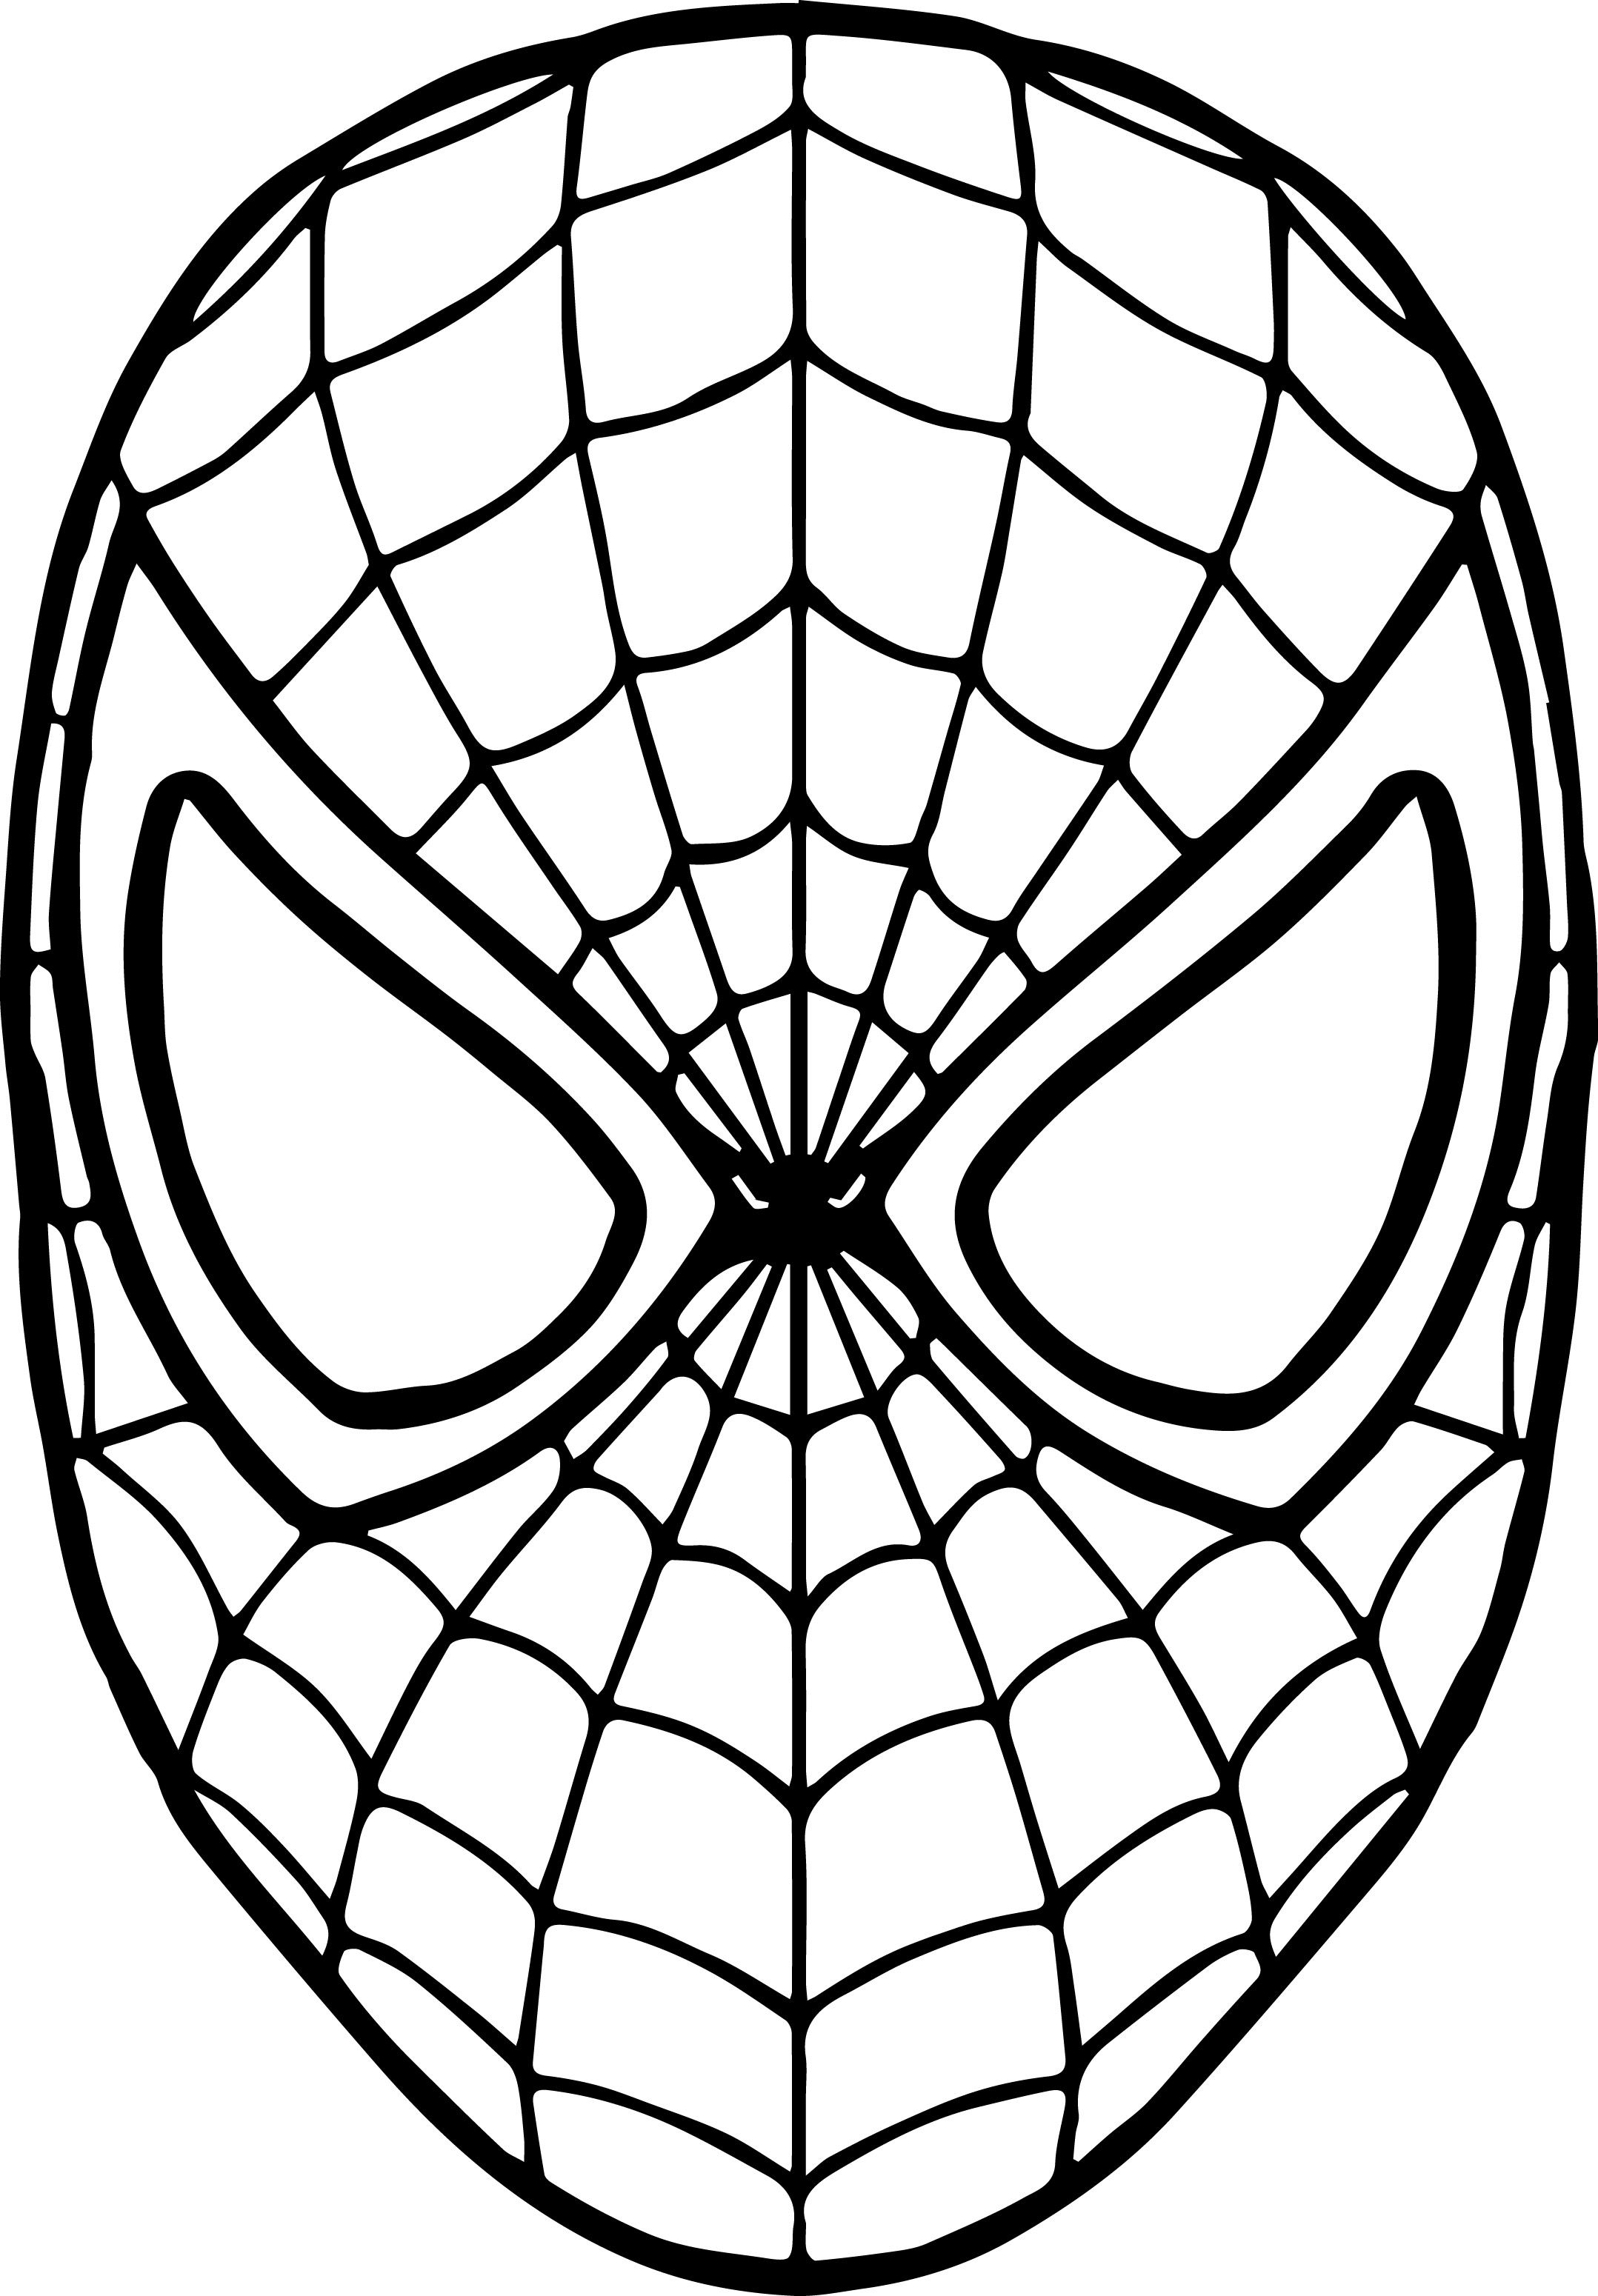 face mask coloring pages mask coloring pages to download and print for free mask face coloring pages